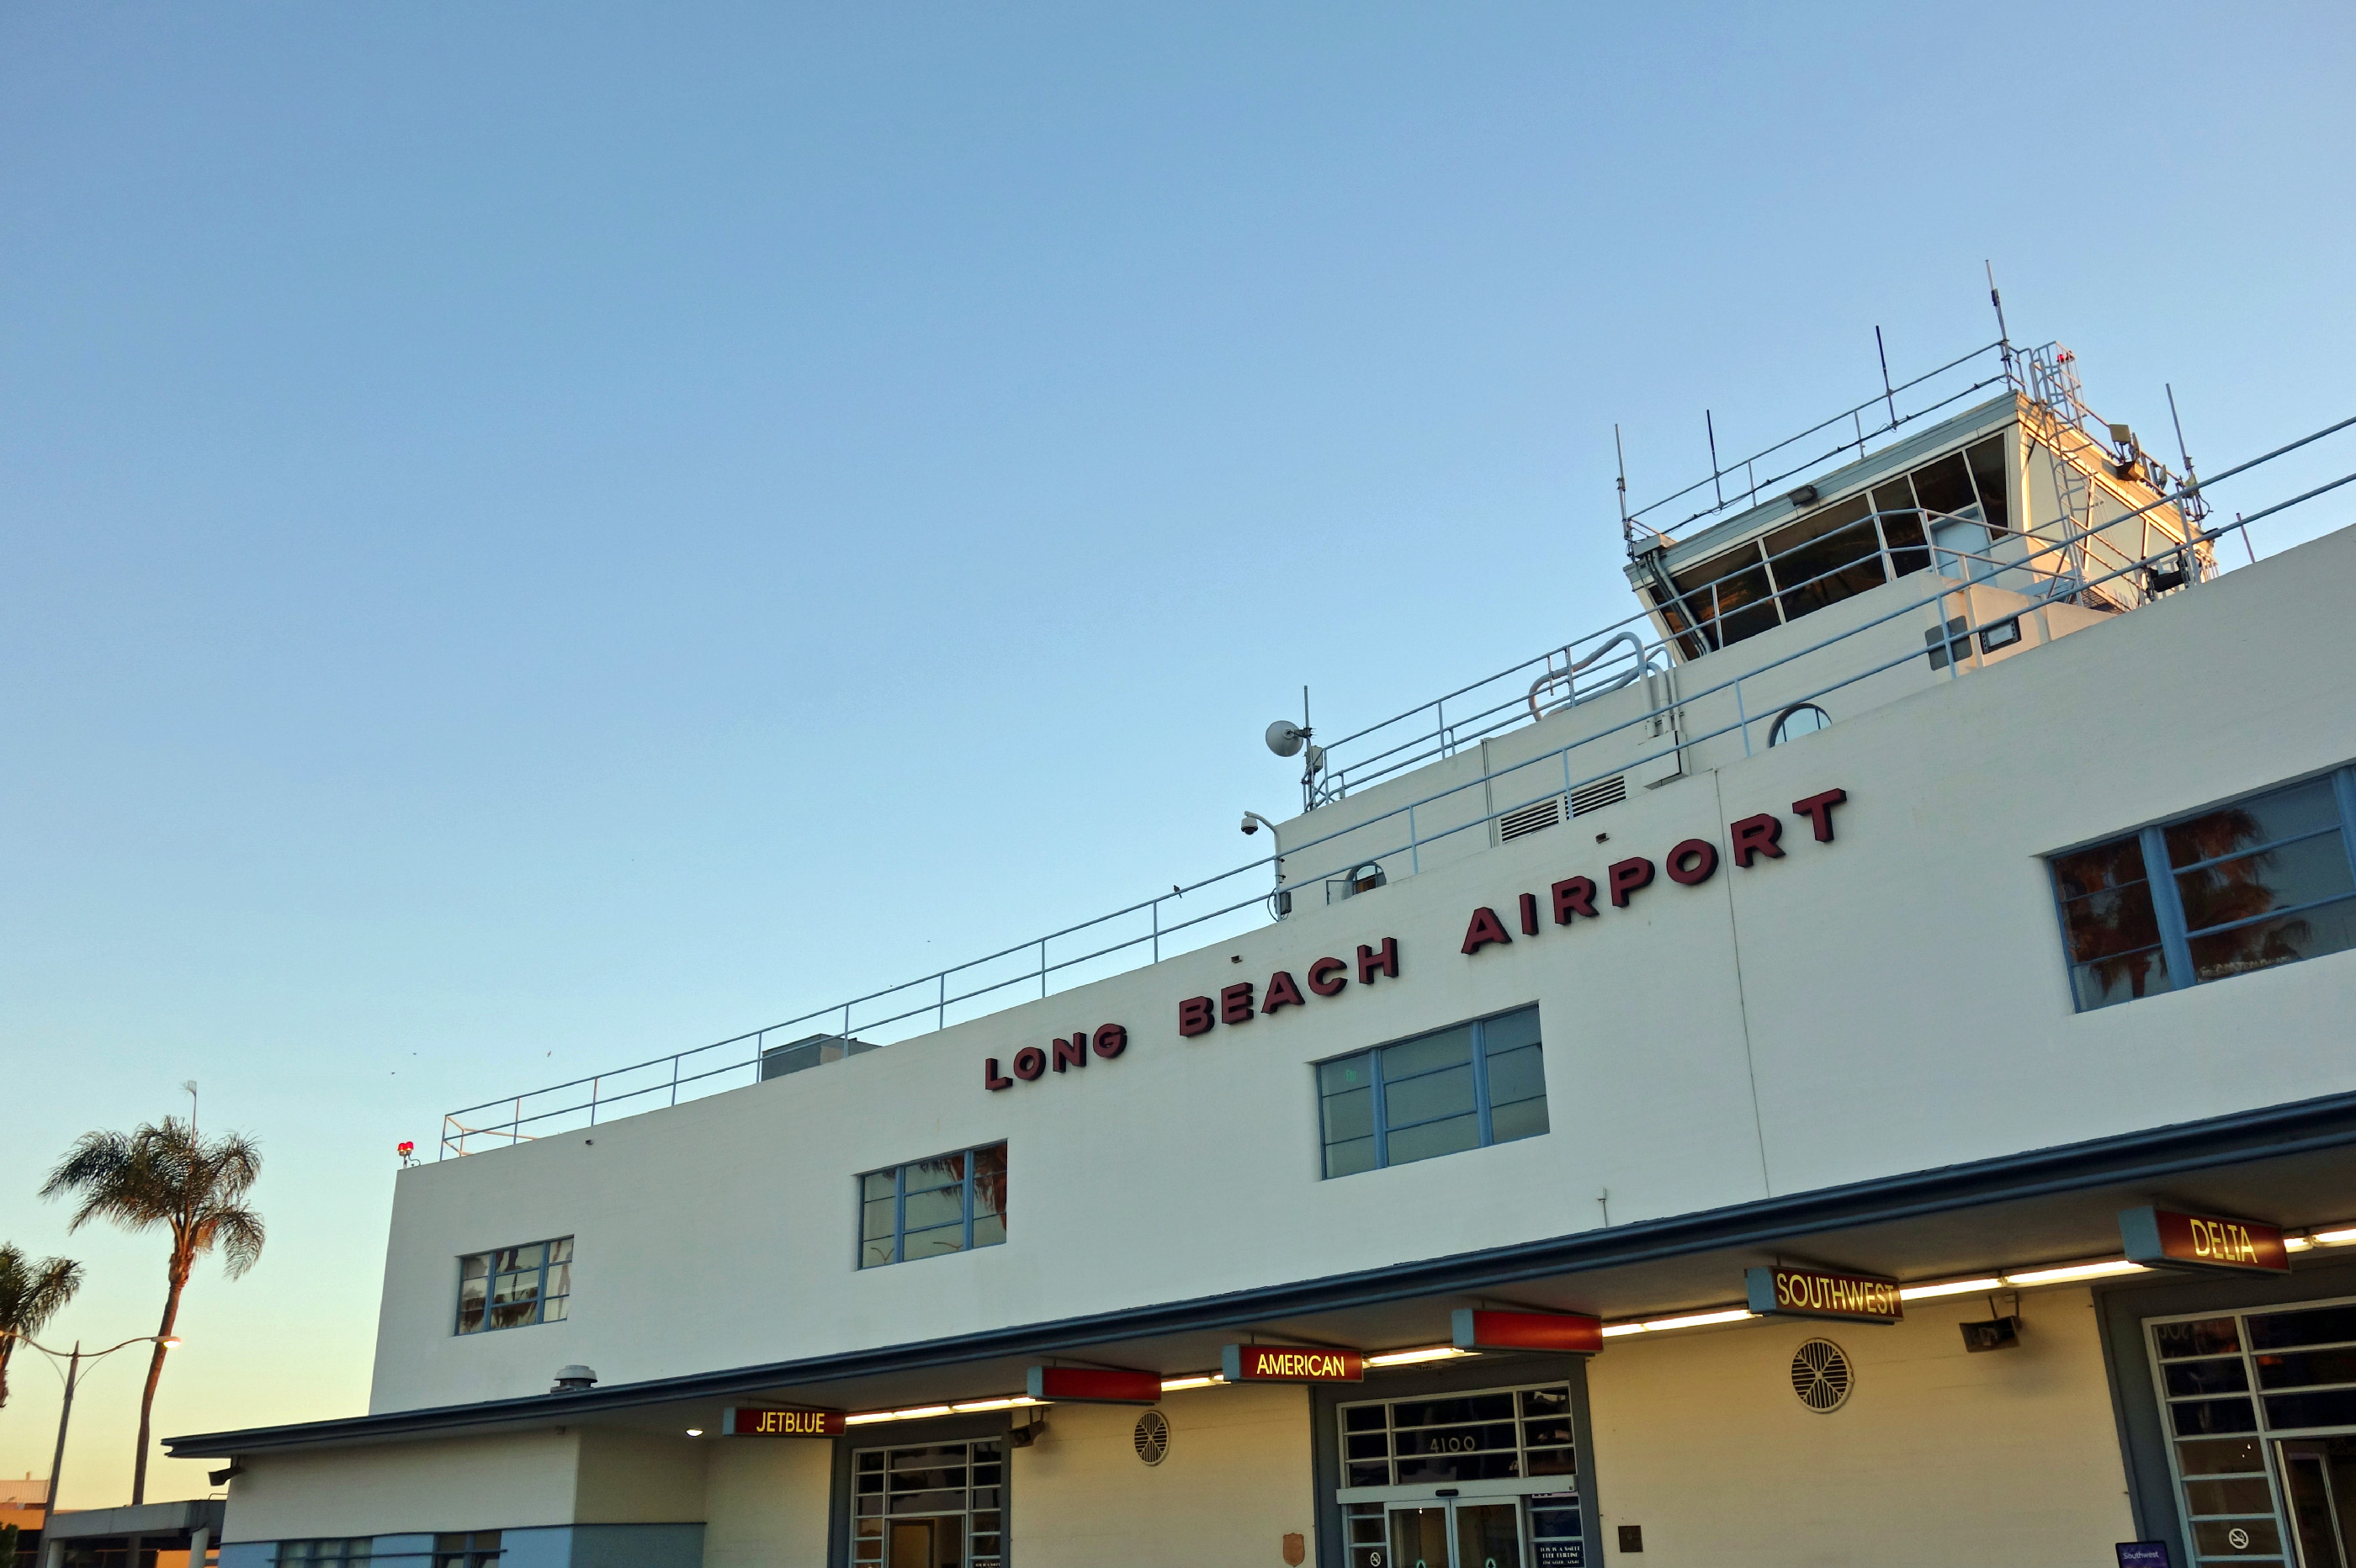 Long Beach Airport (LGB), formerly Daugherty Field.